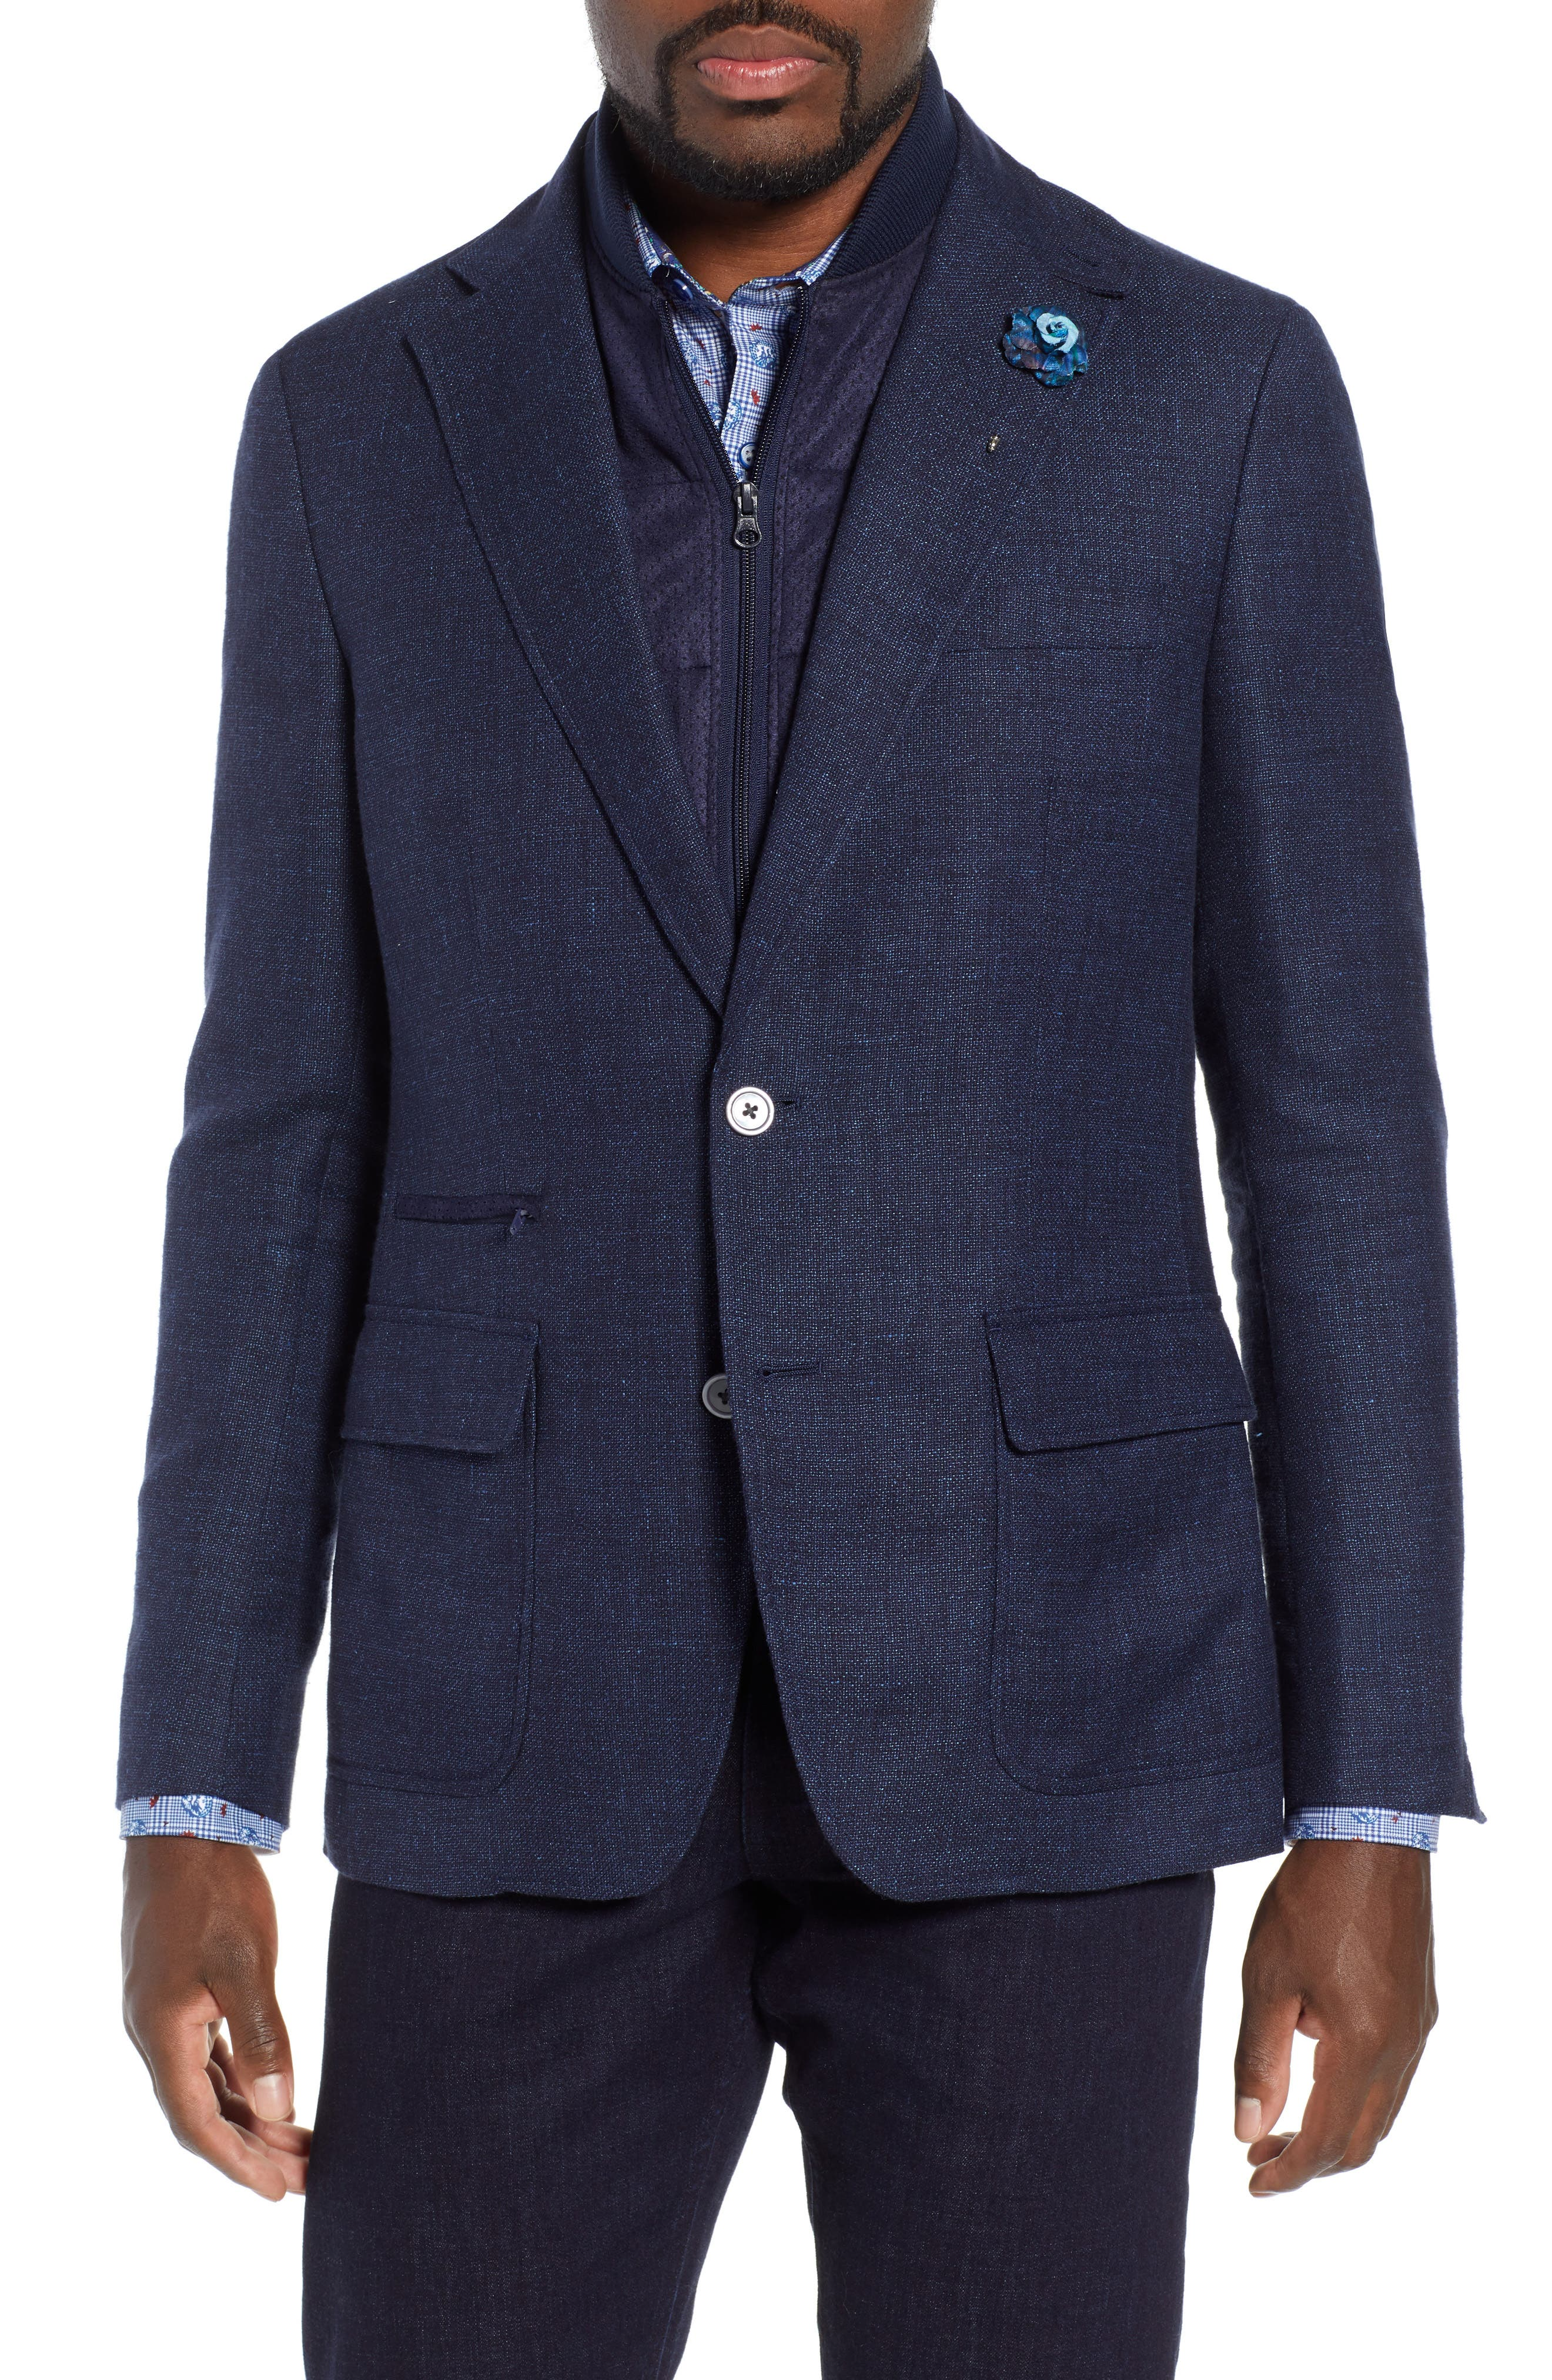 Downhill Tailored Wool Sport Coat,                         Main,                         color, NAVY